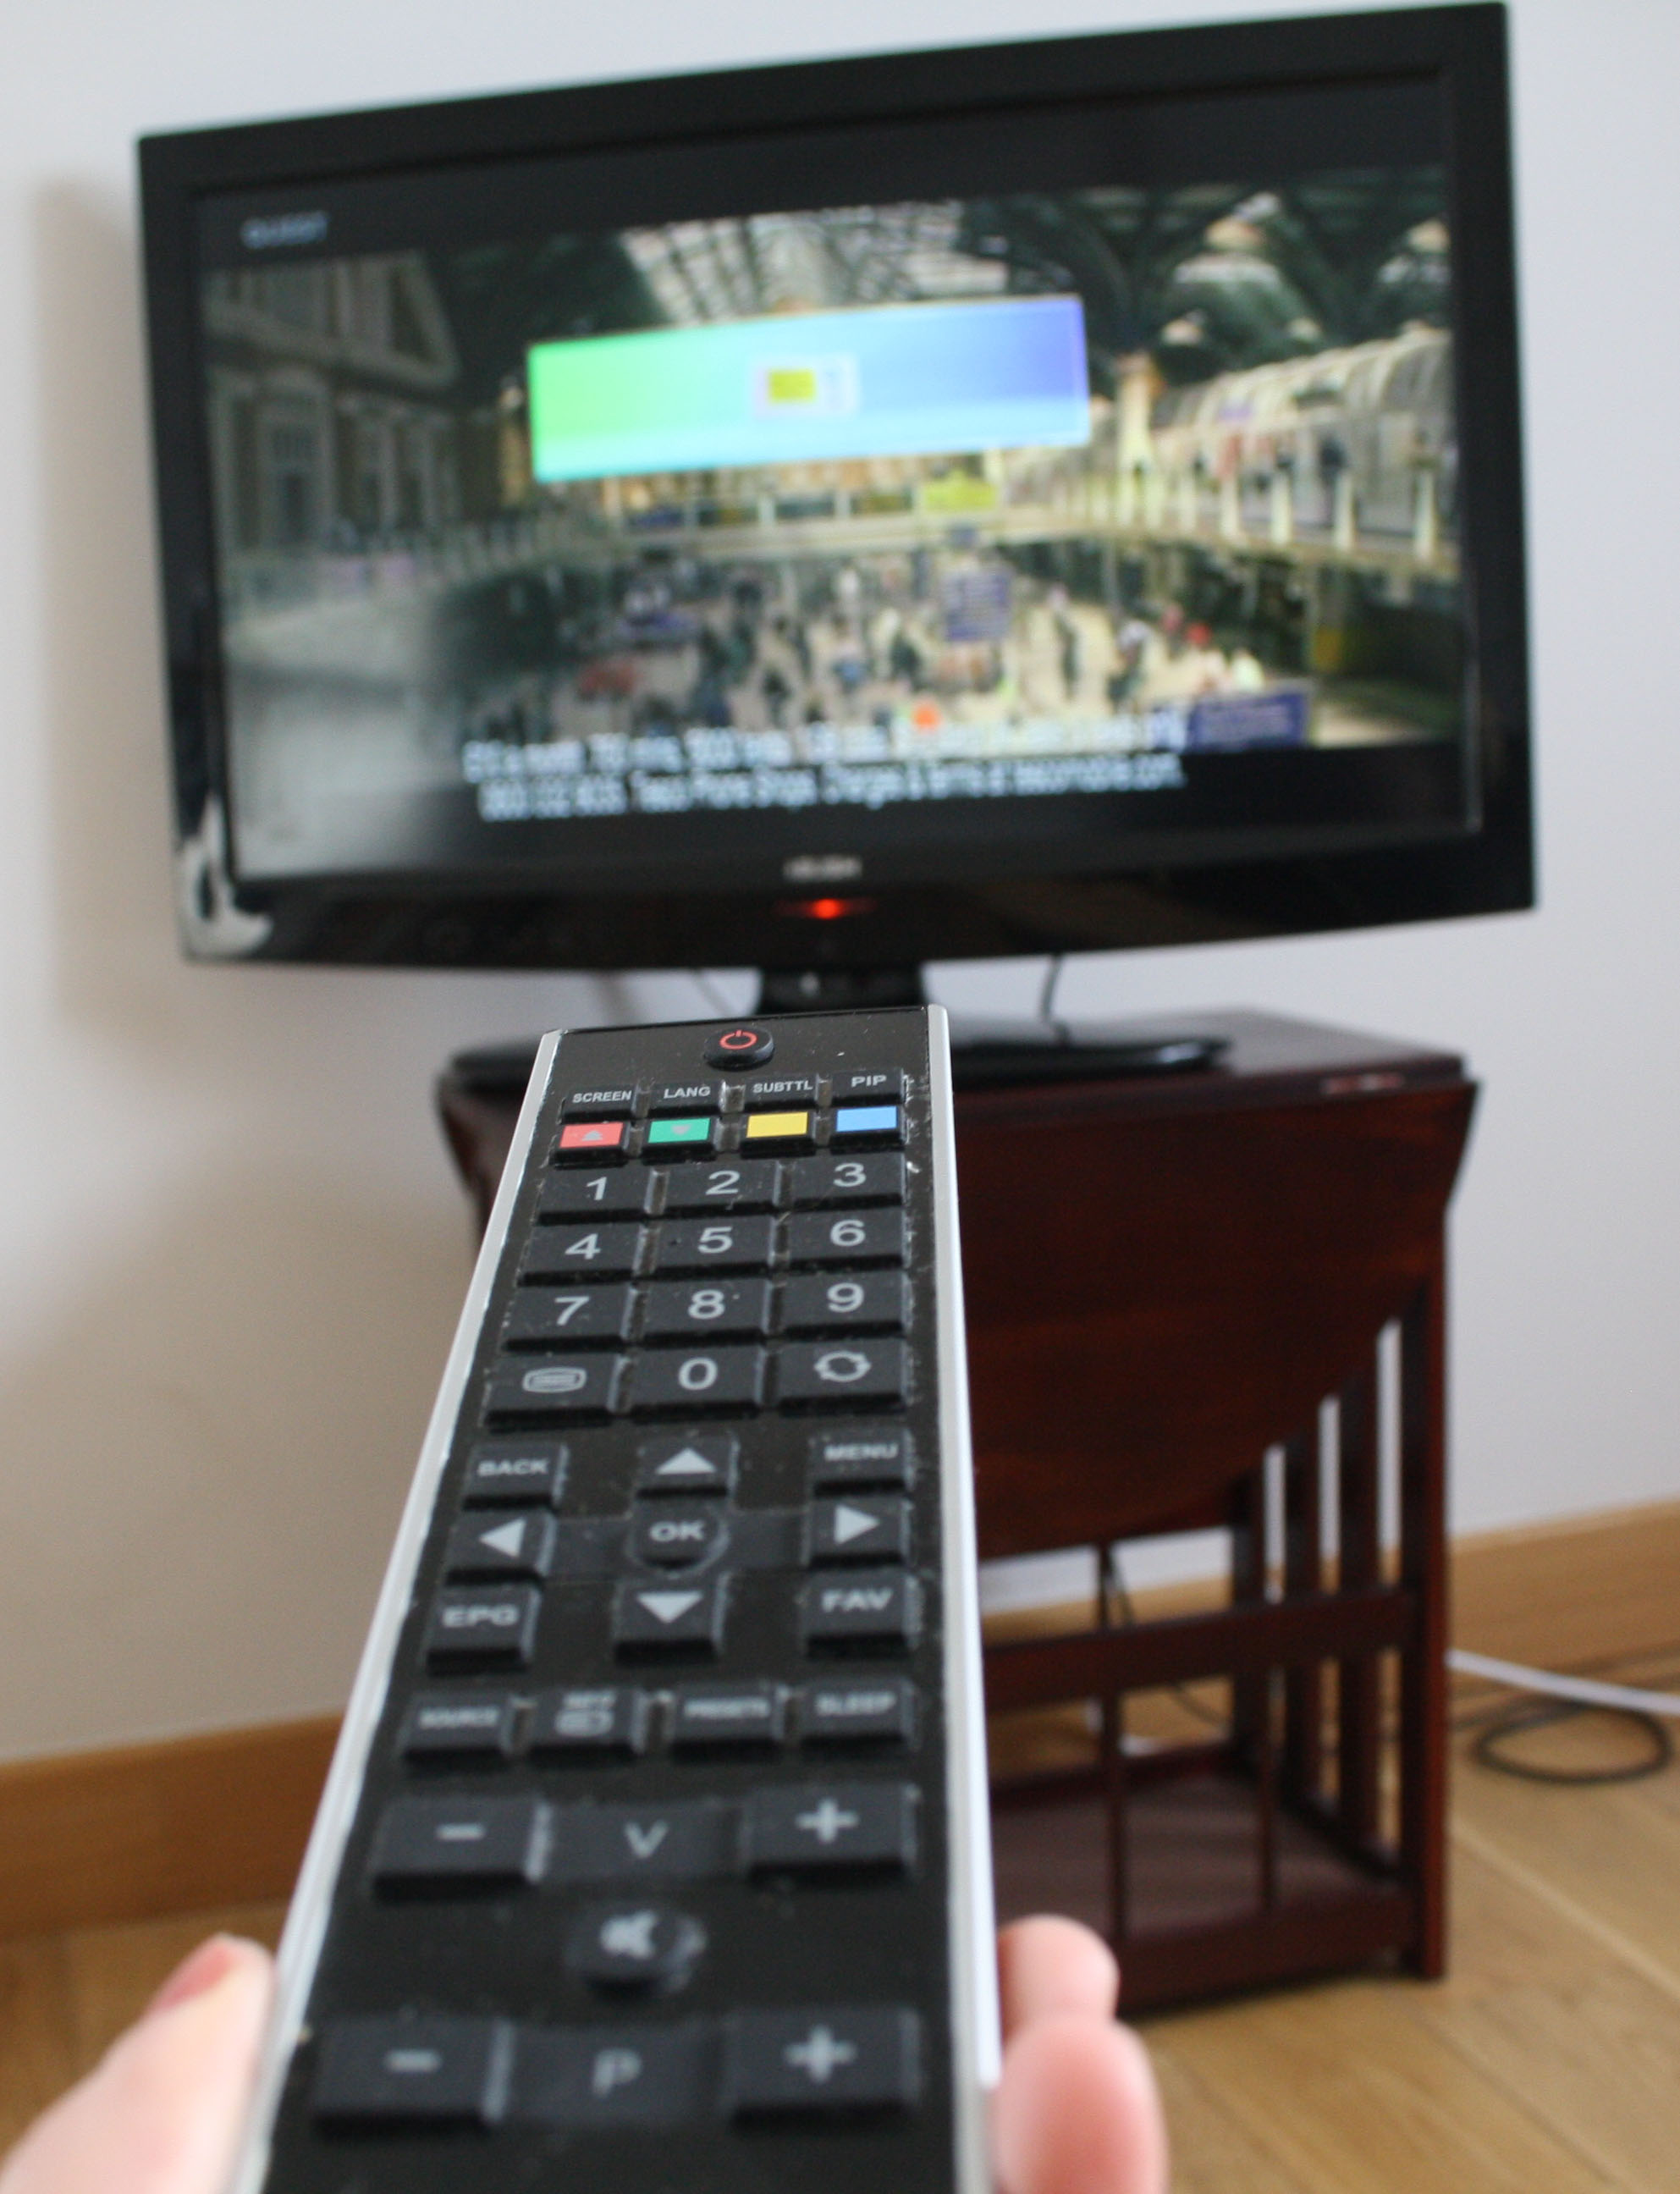 More than 180 Students failing to pay for TV licenses